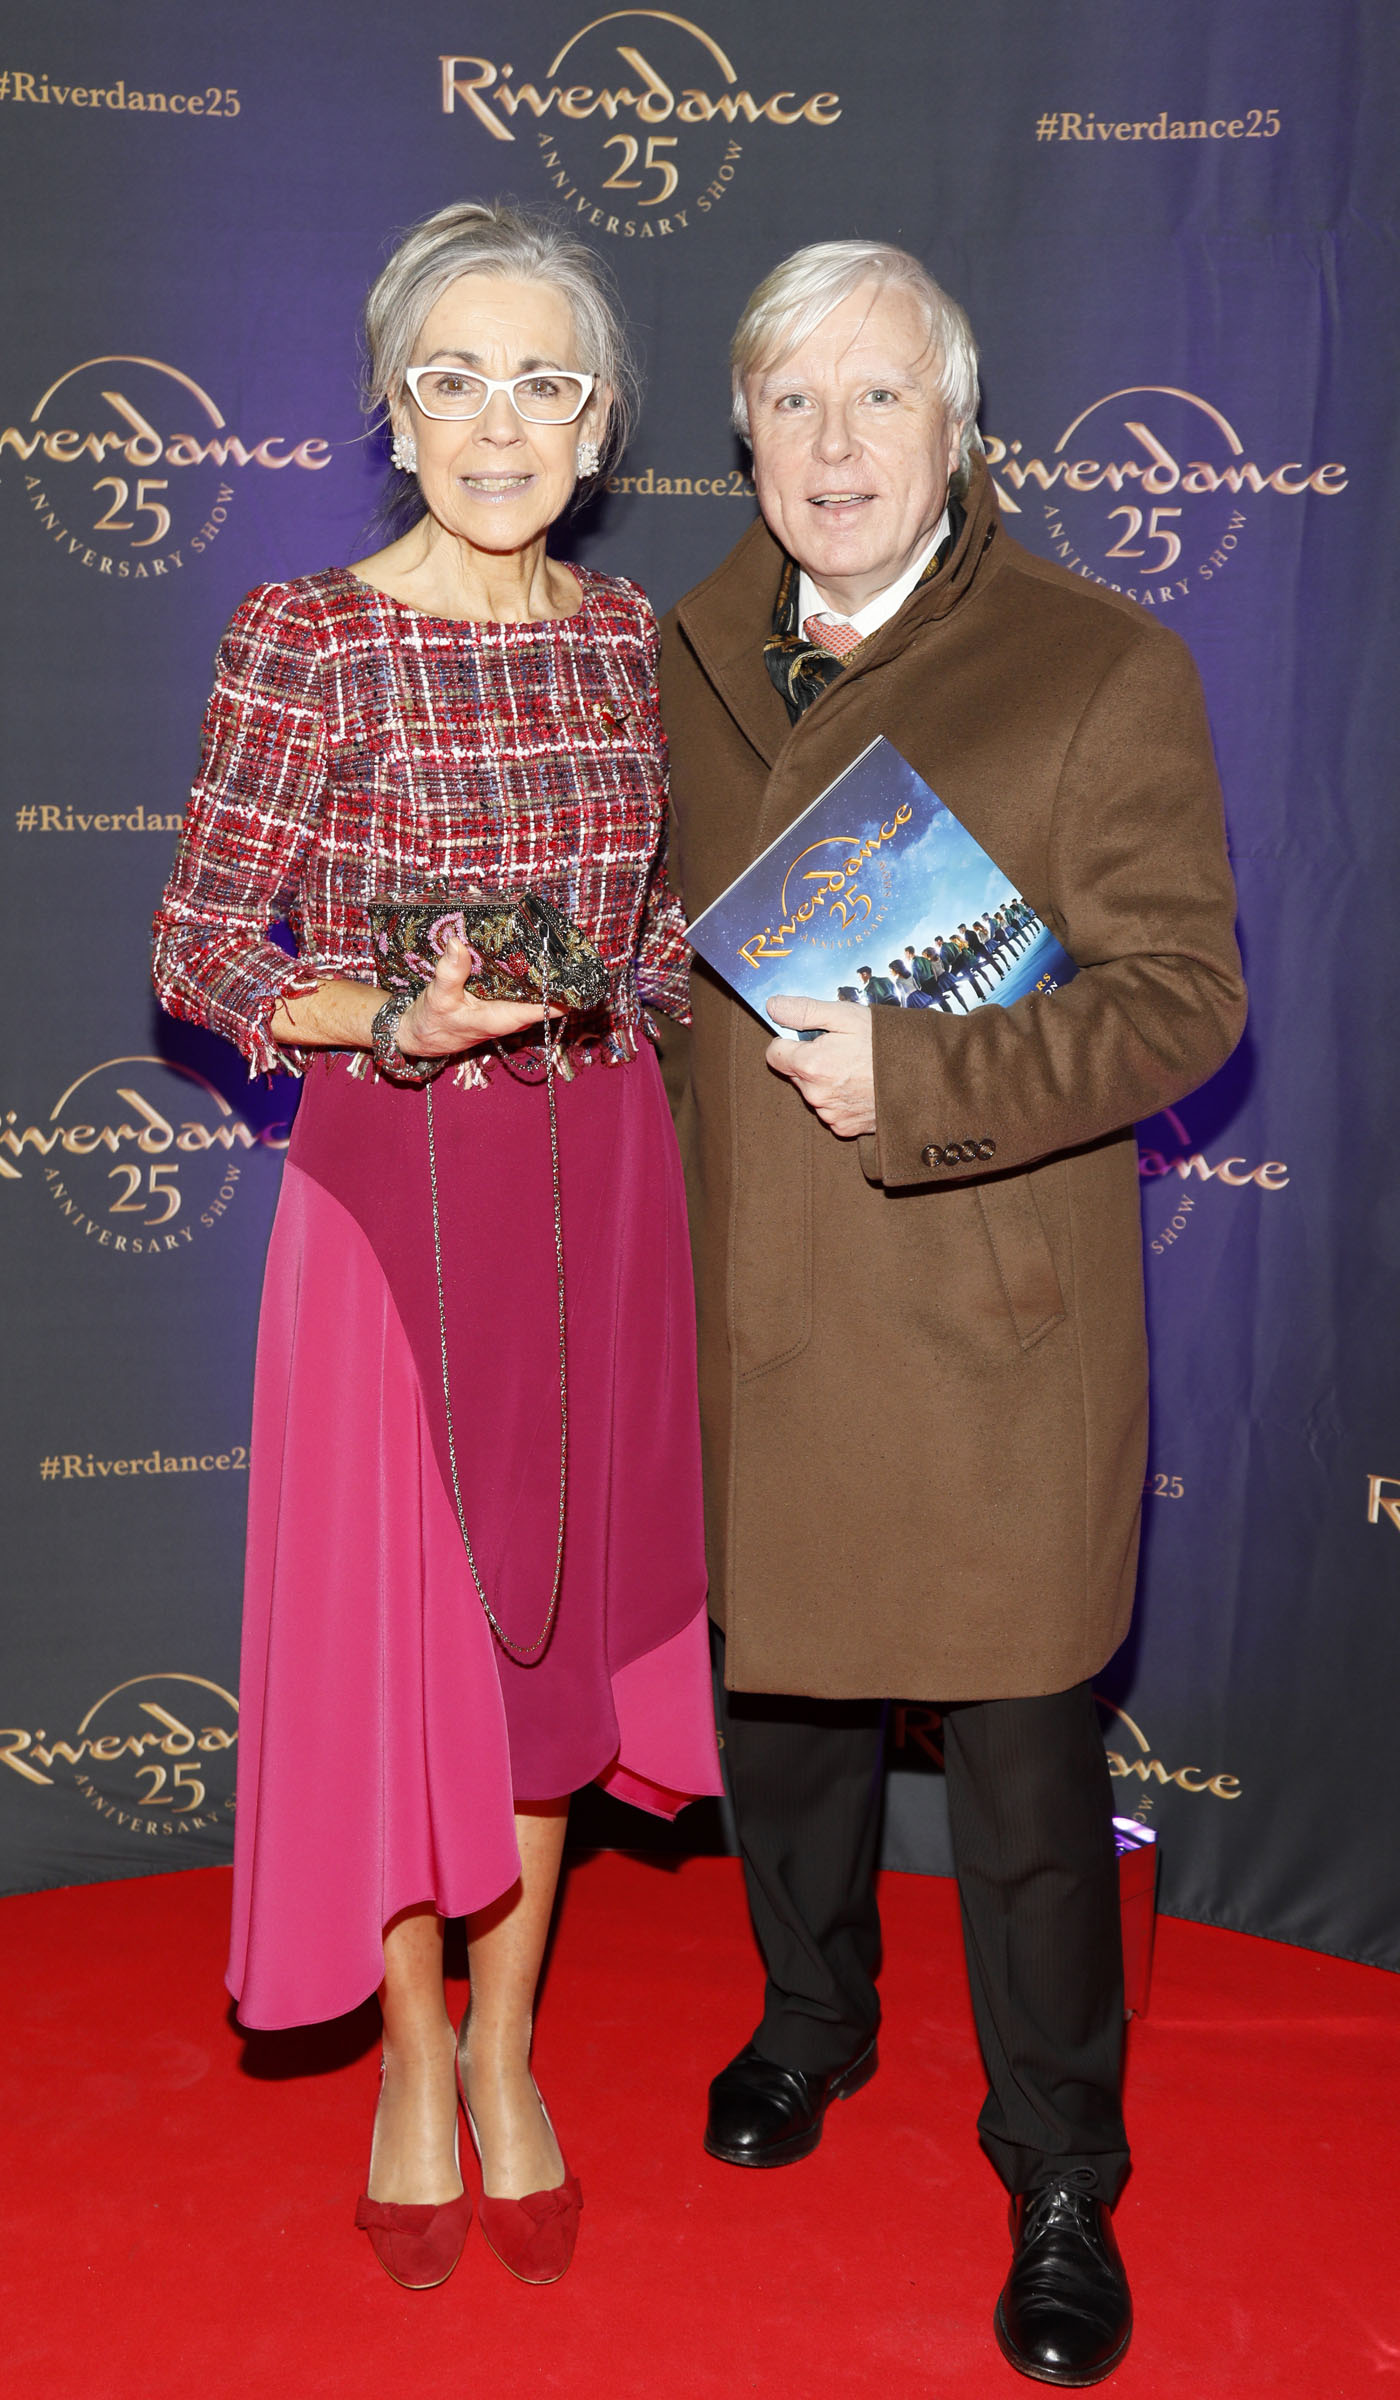 Elizabeth O'Mahony and Francis Brennan at the historic gala performance of Riverdance 25th Anniversary show at 3Arena Dublin exactly 25 years to the day that Riverdance was first performed at the Point Depot.  Photo: Kieran Harnett